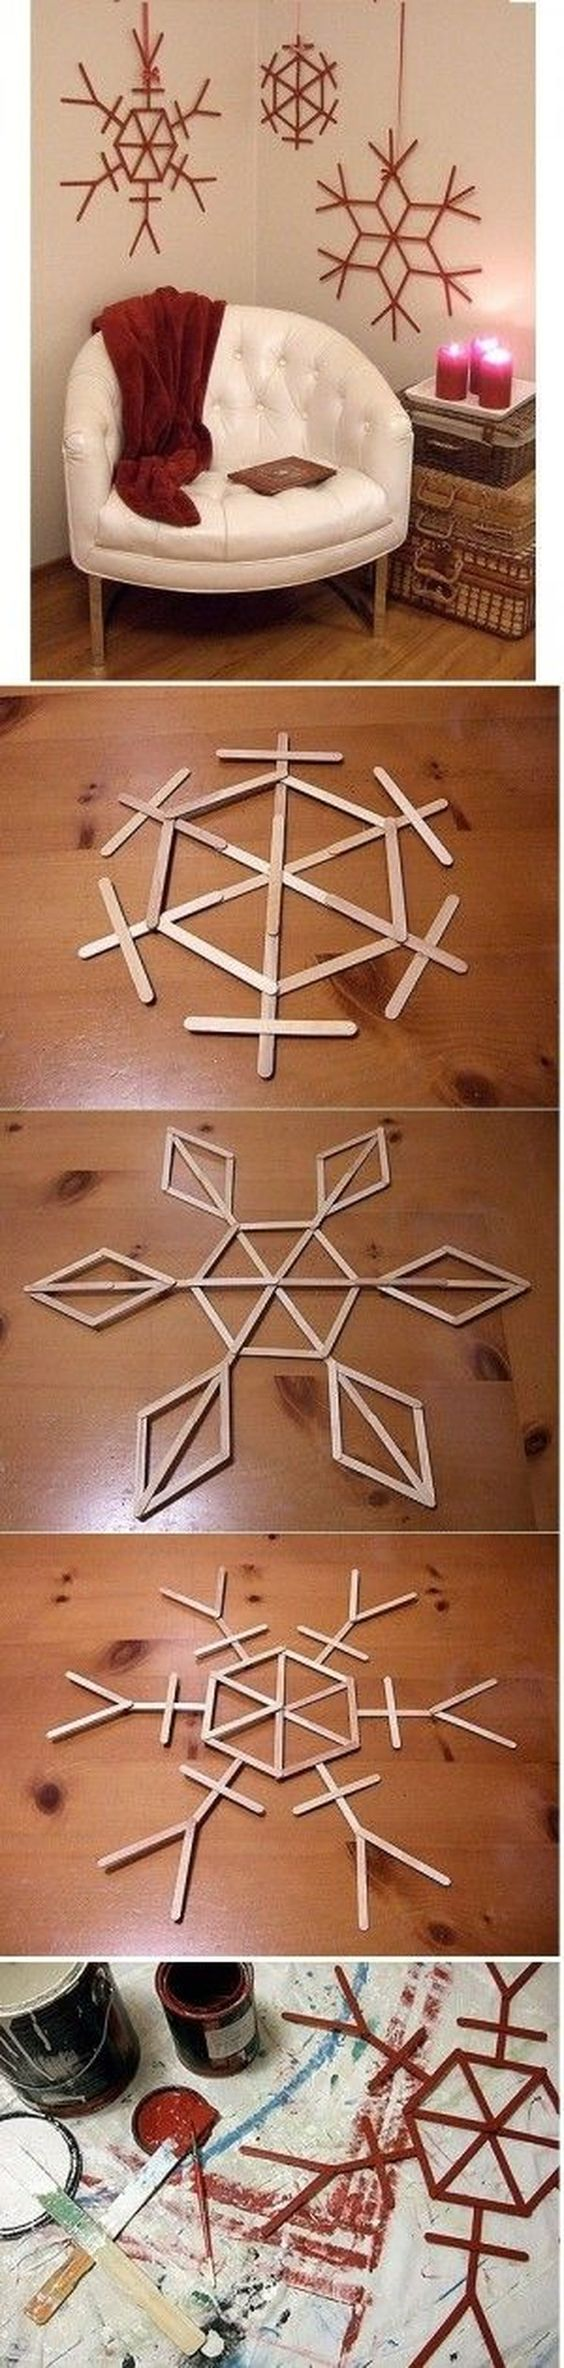 Make Popsicle Snowflakes.